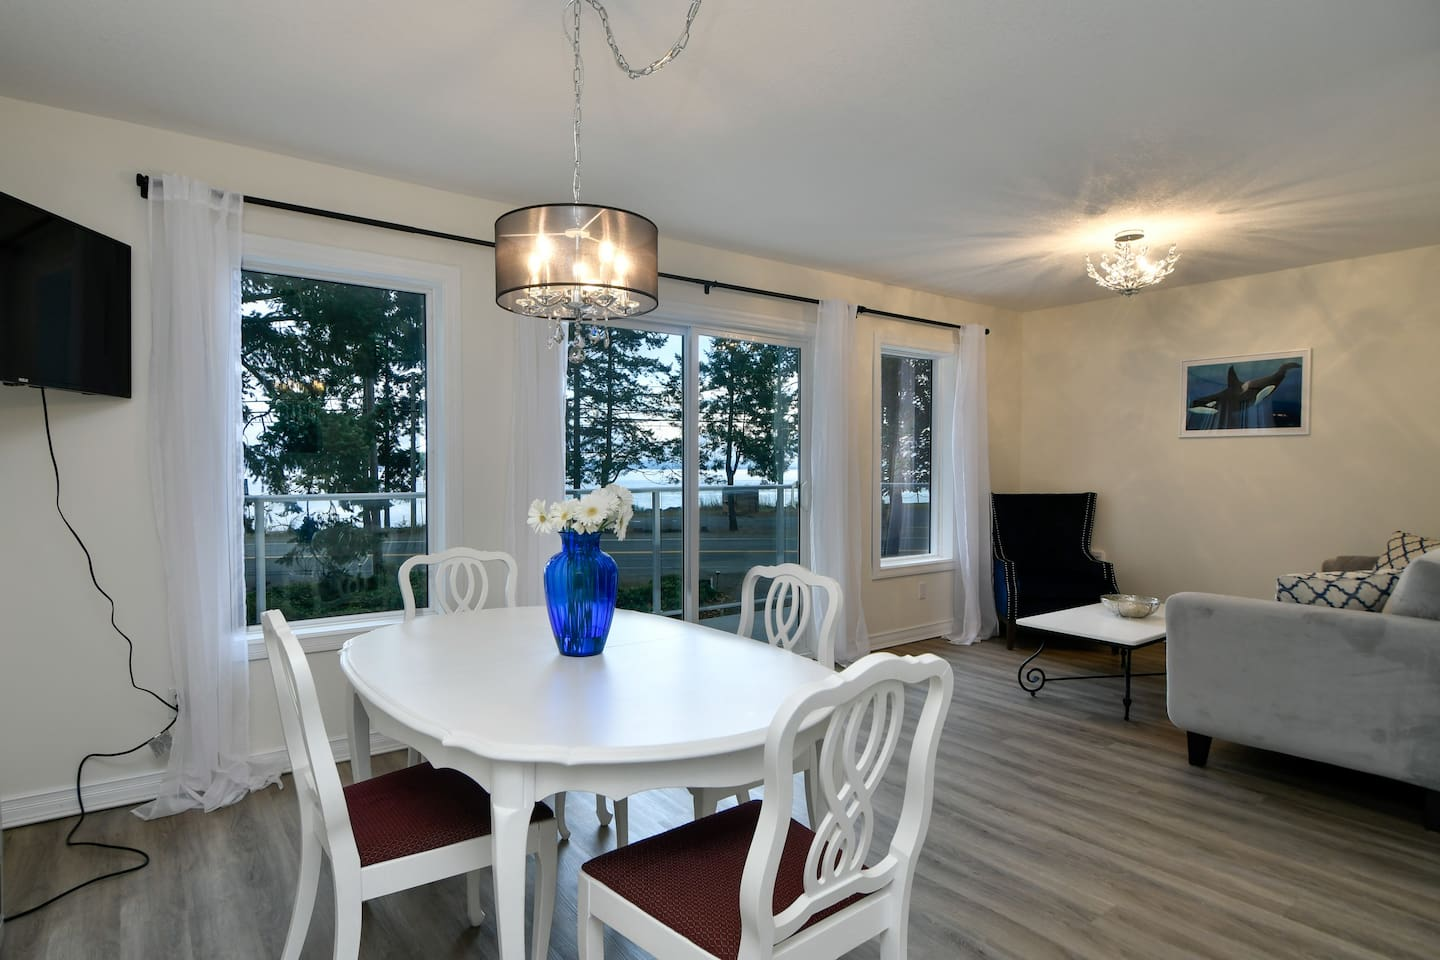 Main open concept space with ocean view